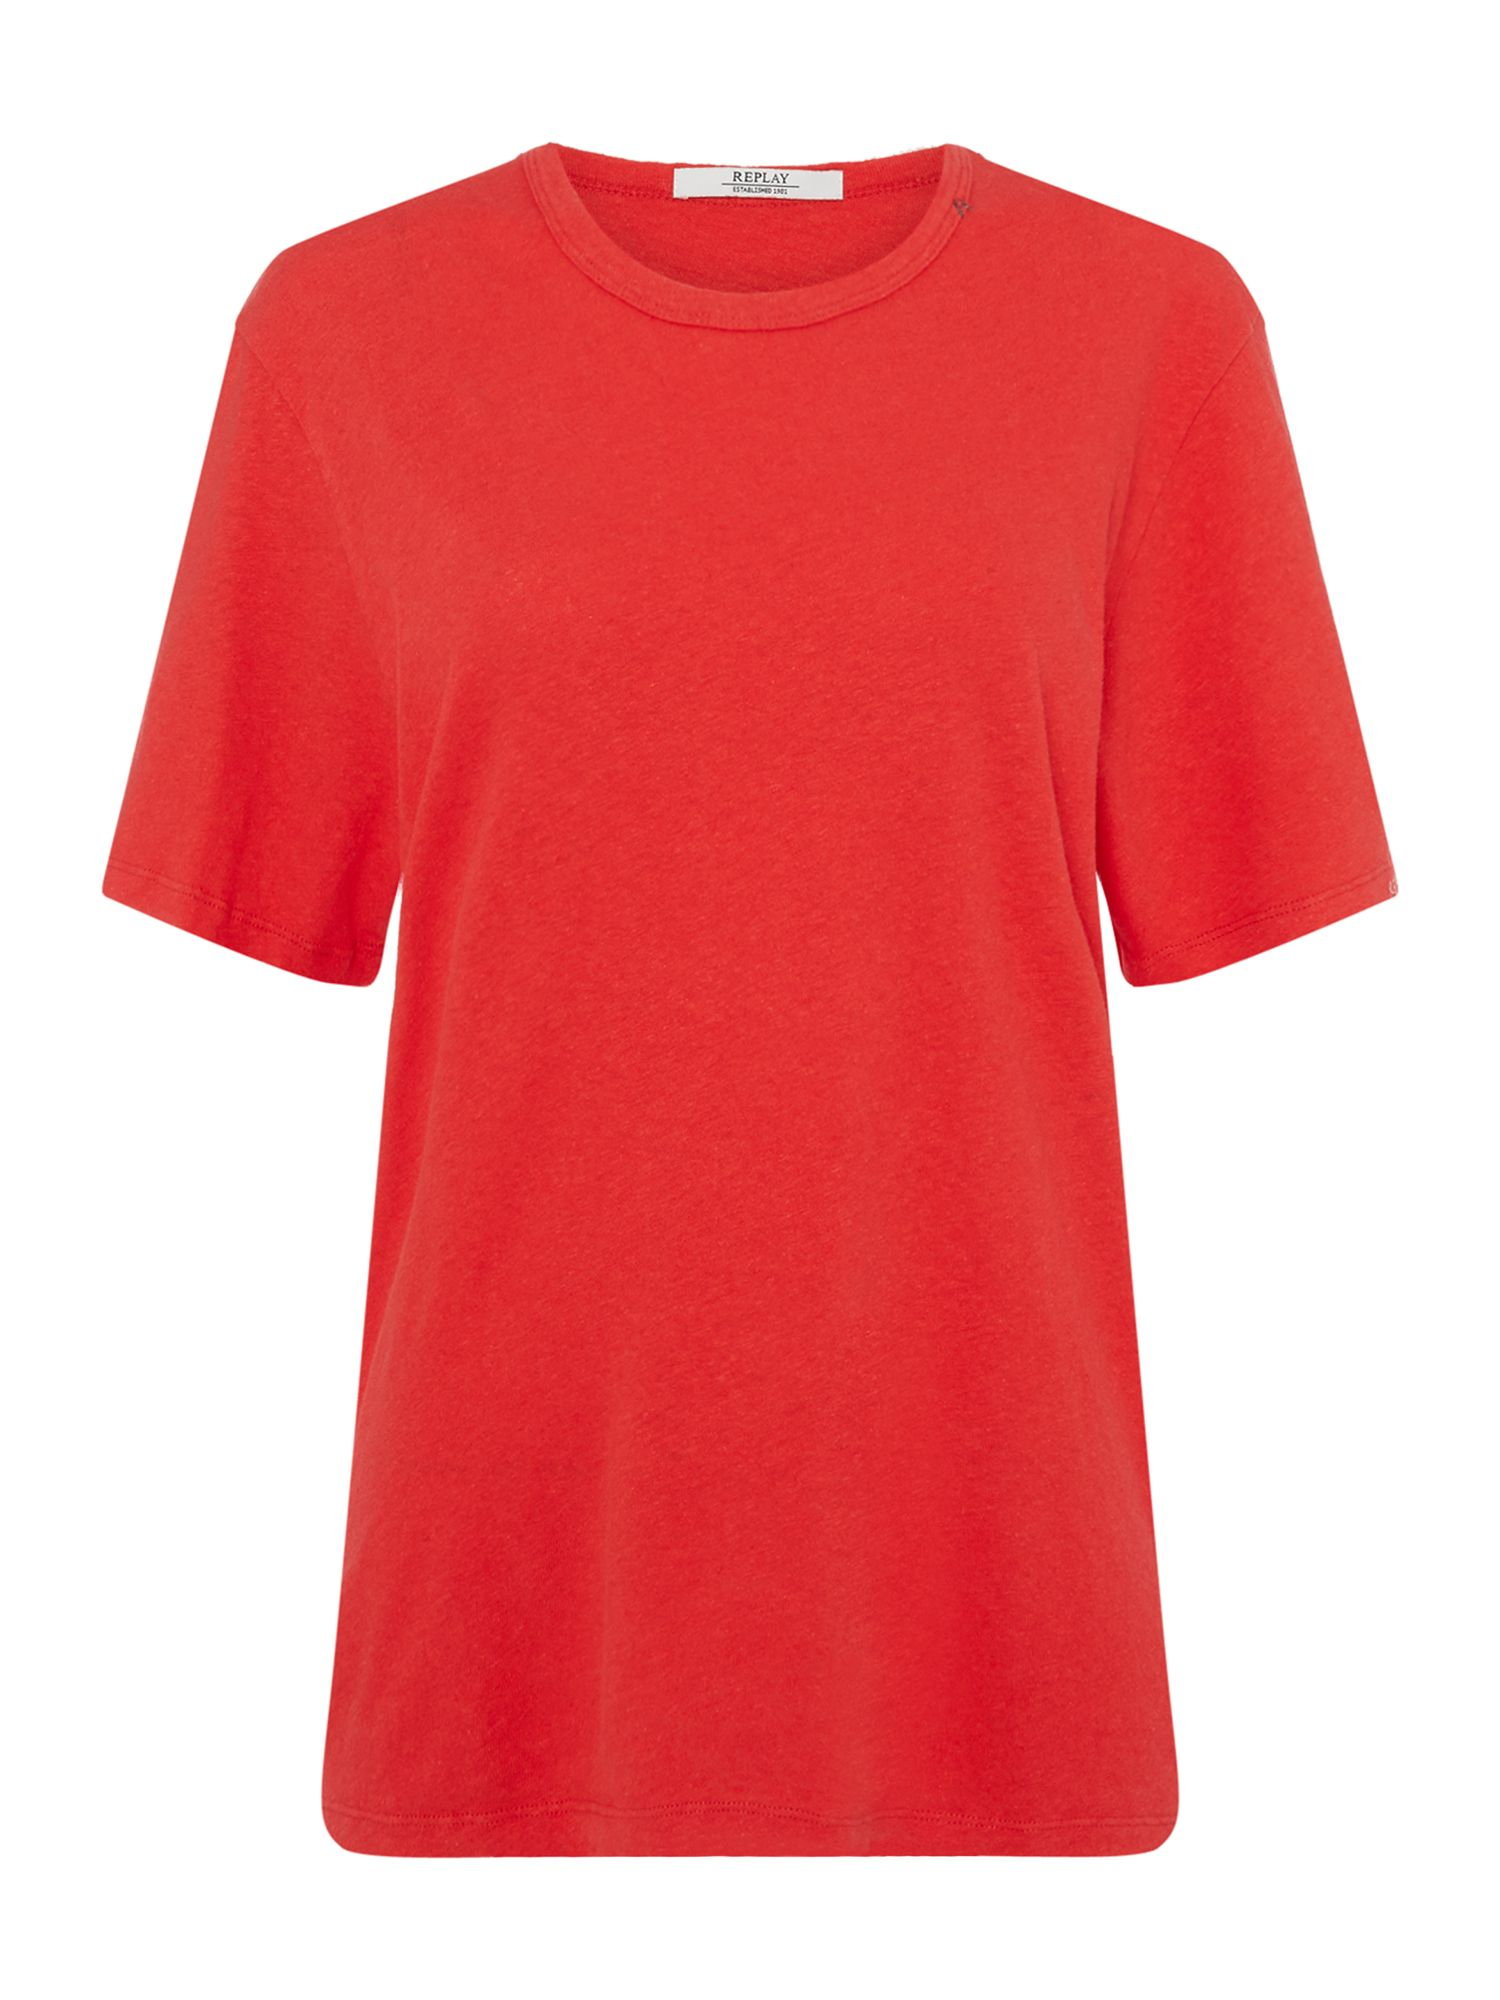 Replay Cotton Linen T-Shirt, Red